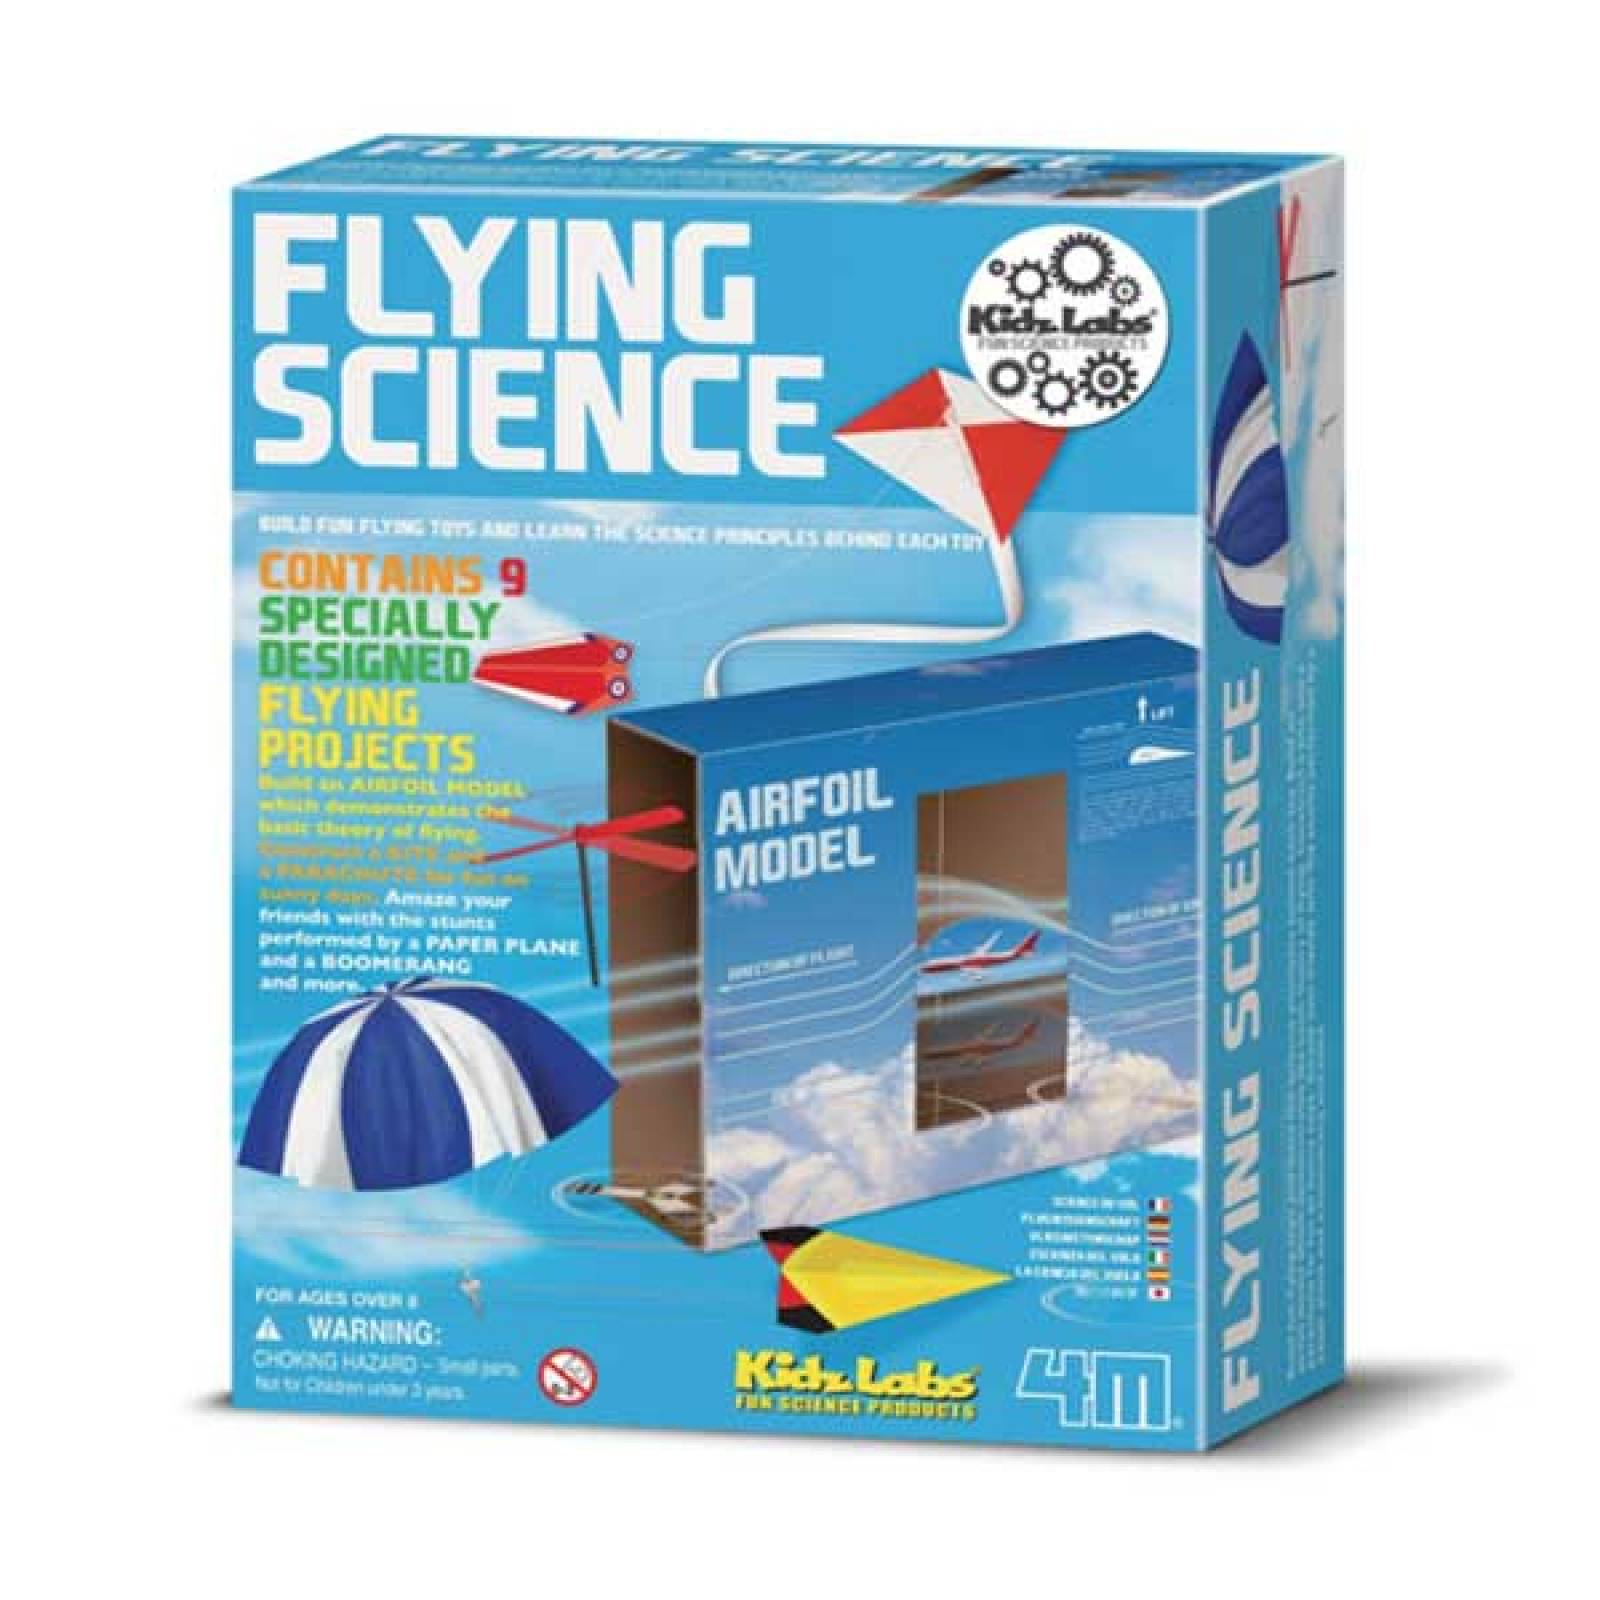 Flying Science Kit - Kids Lab 4M 8yrs+